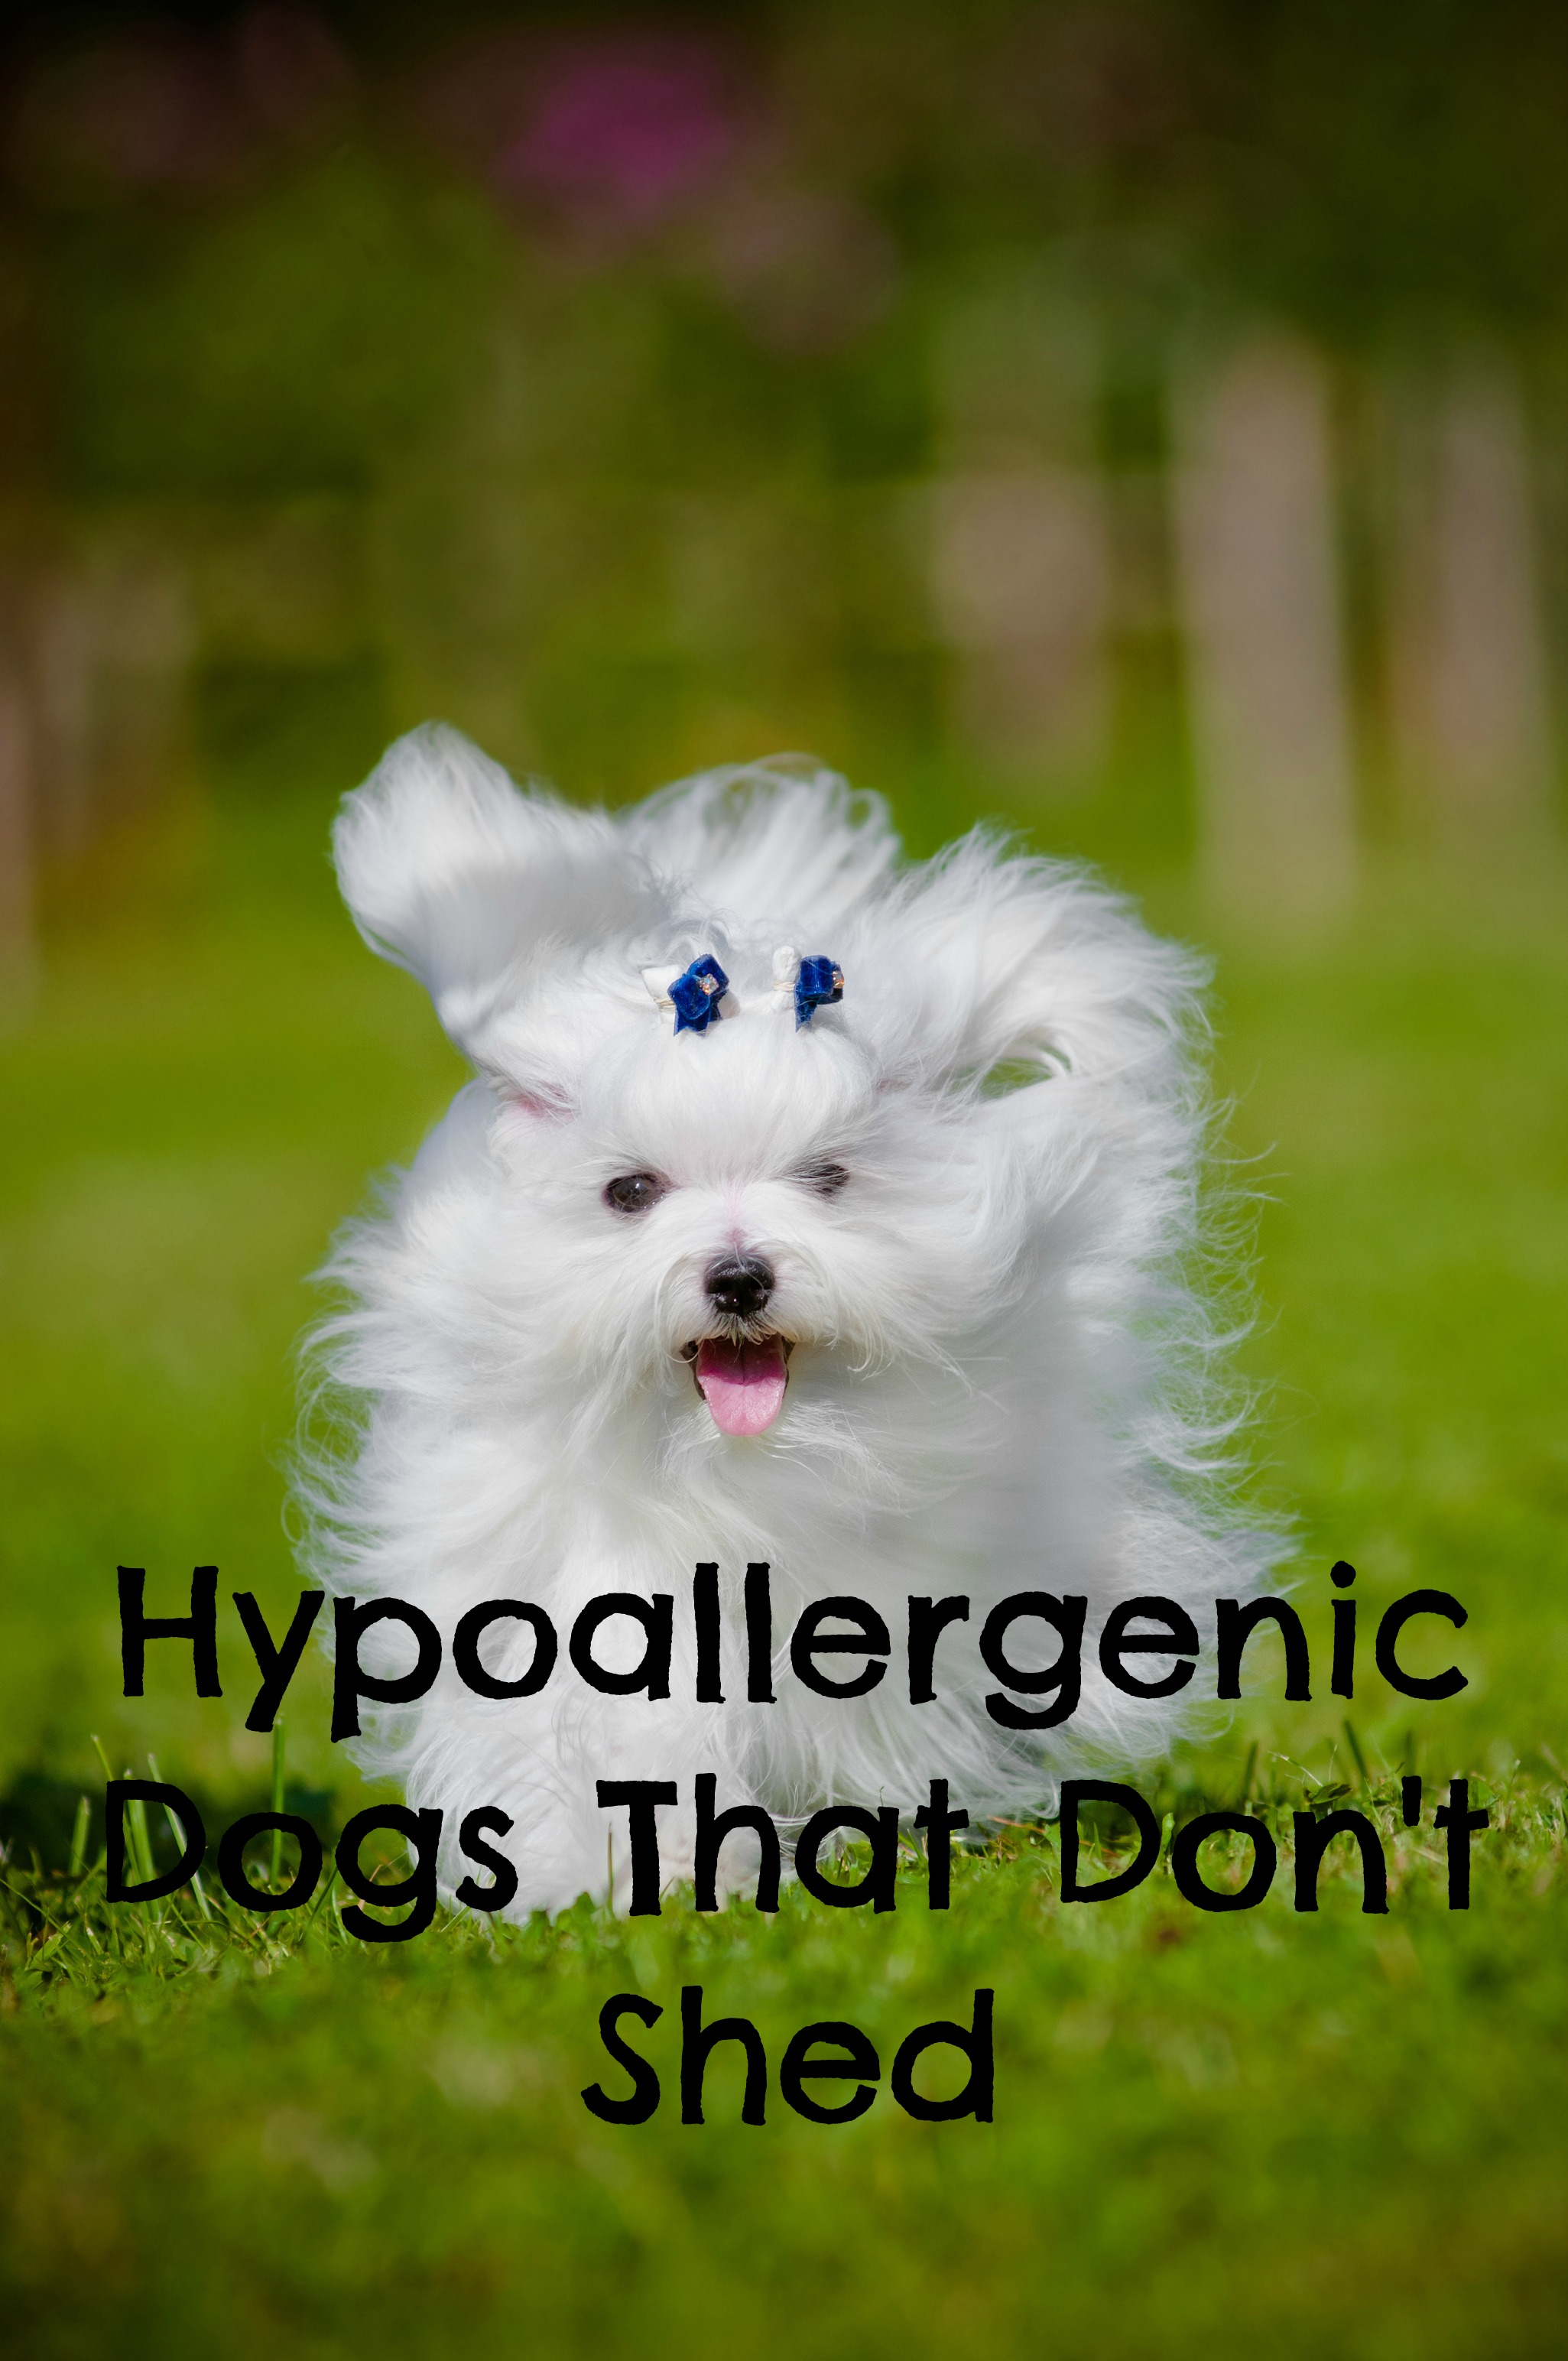 Which Hypoallergenic Dogs Don't Shed?